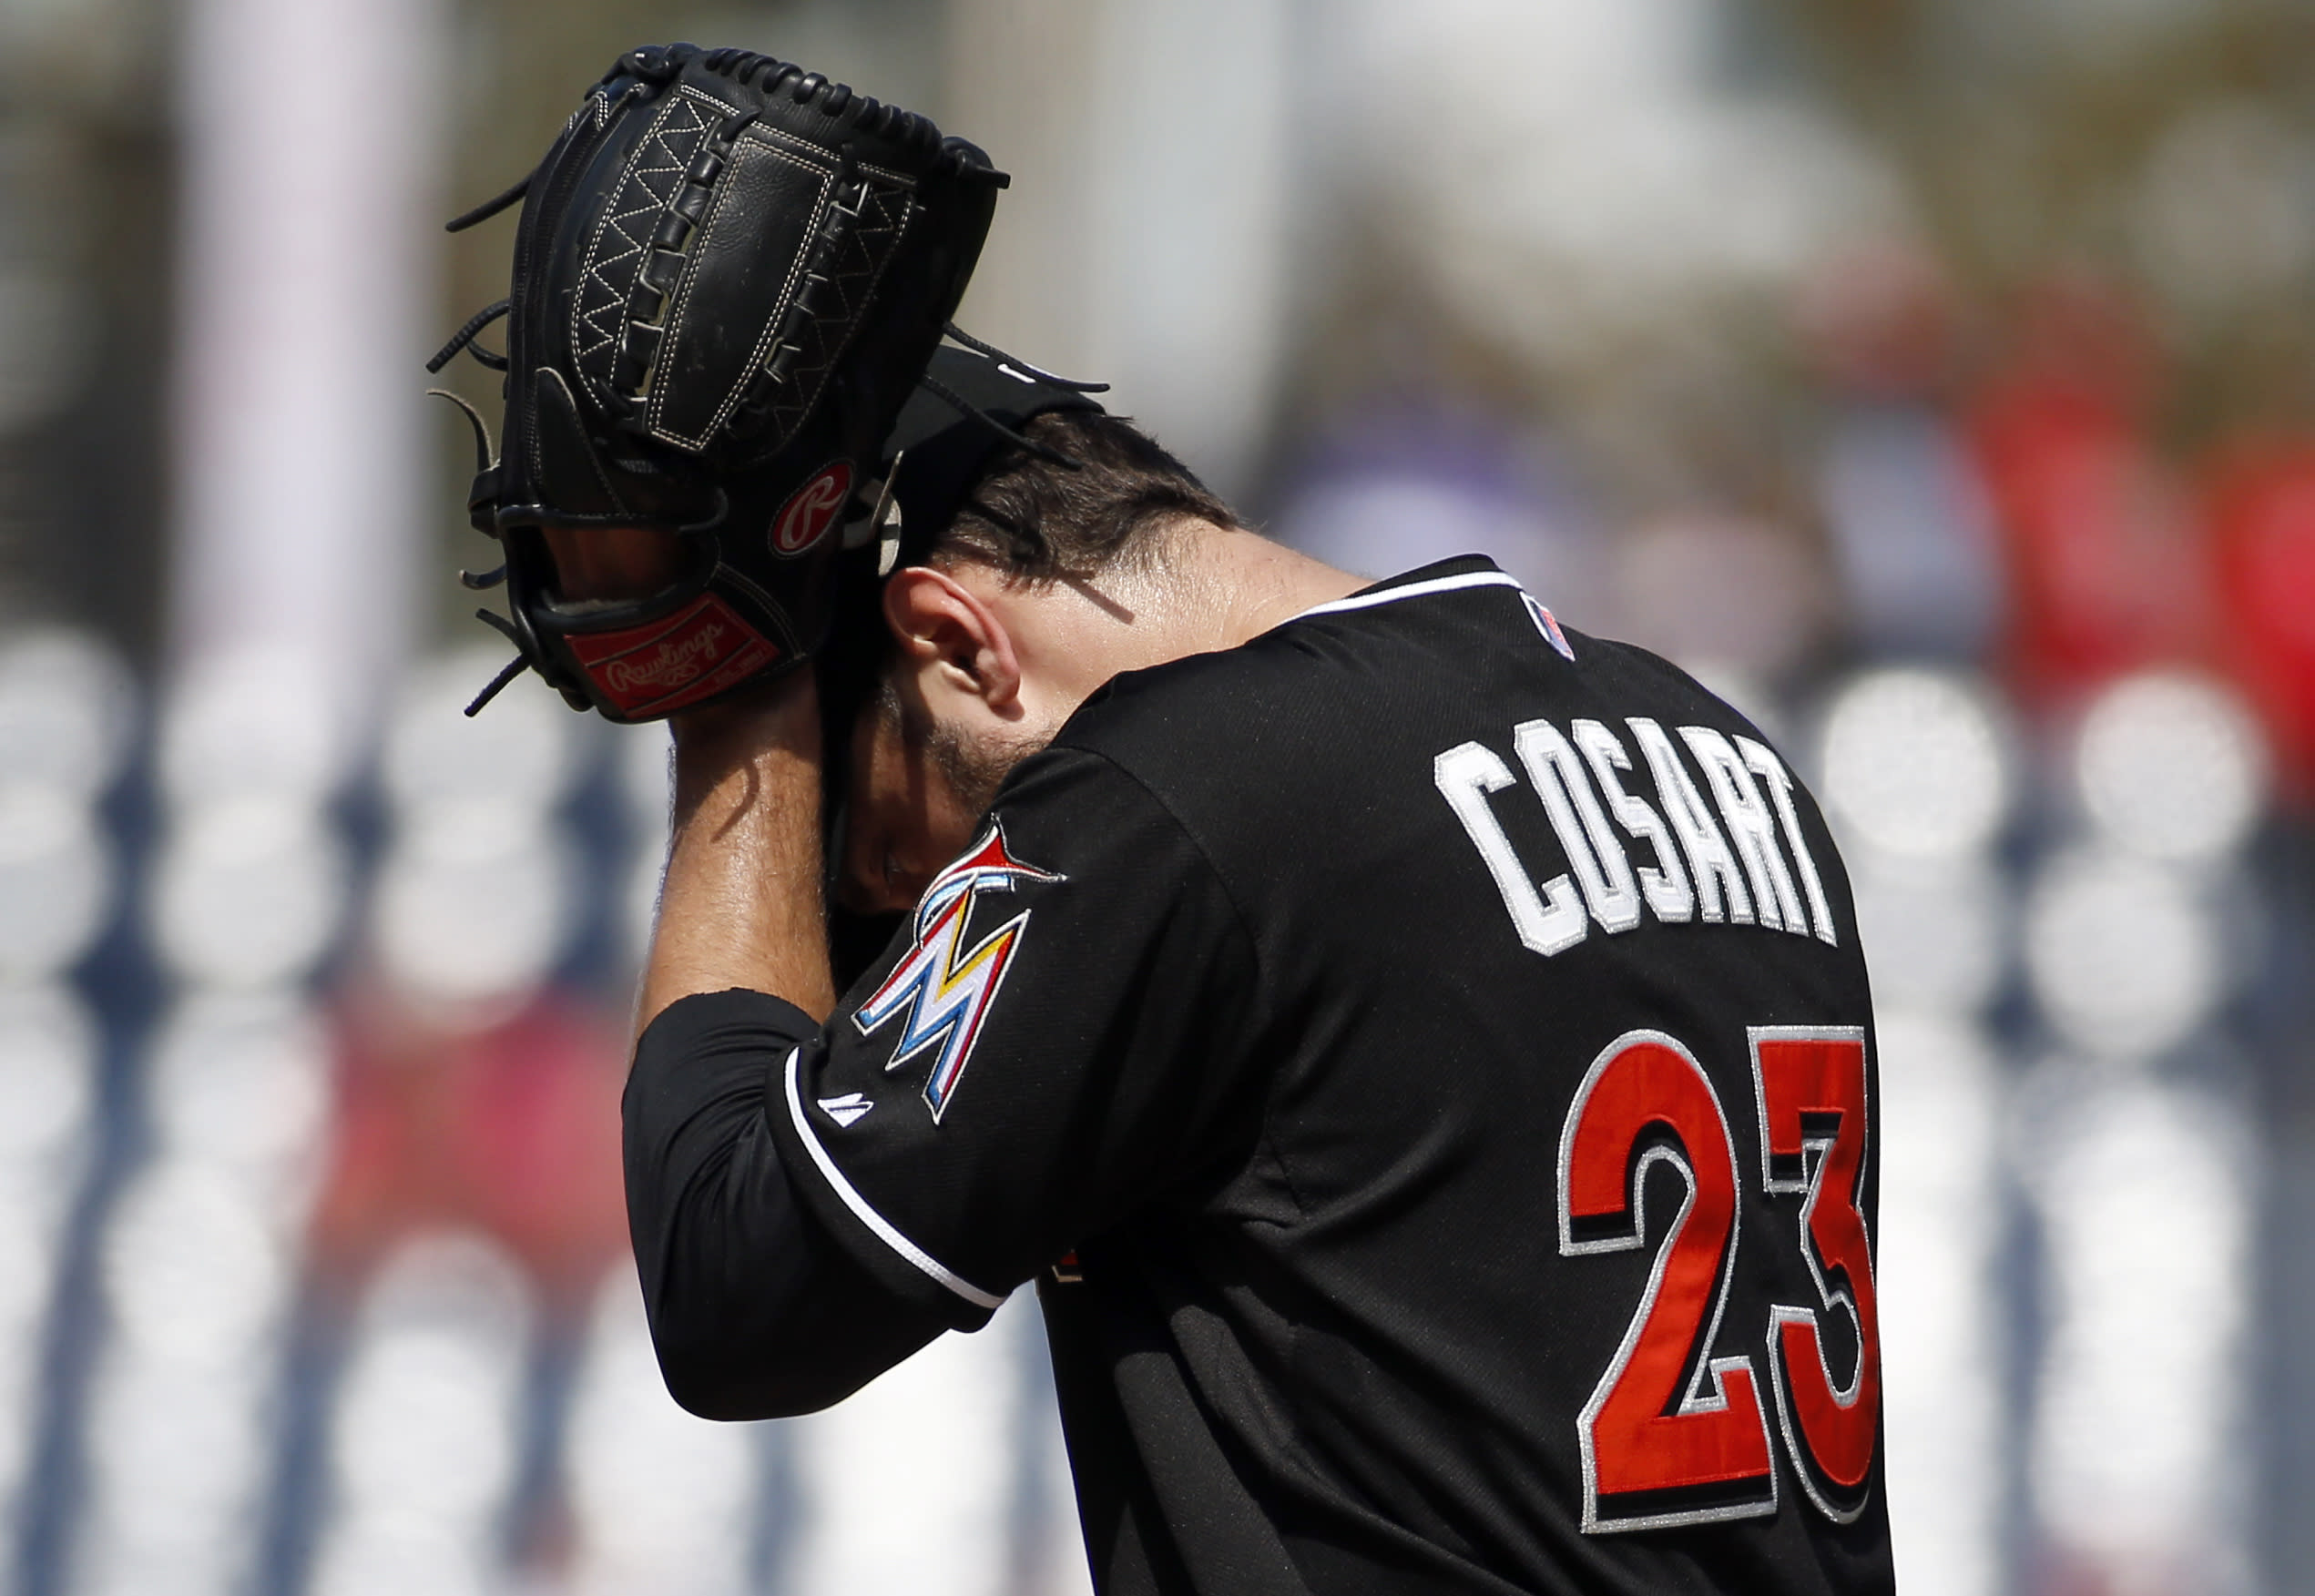 Report: Marlins pitcher Jarred Cosart to be investigated by MLB for alleged gambling ties